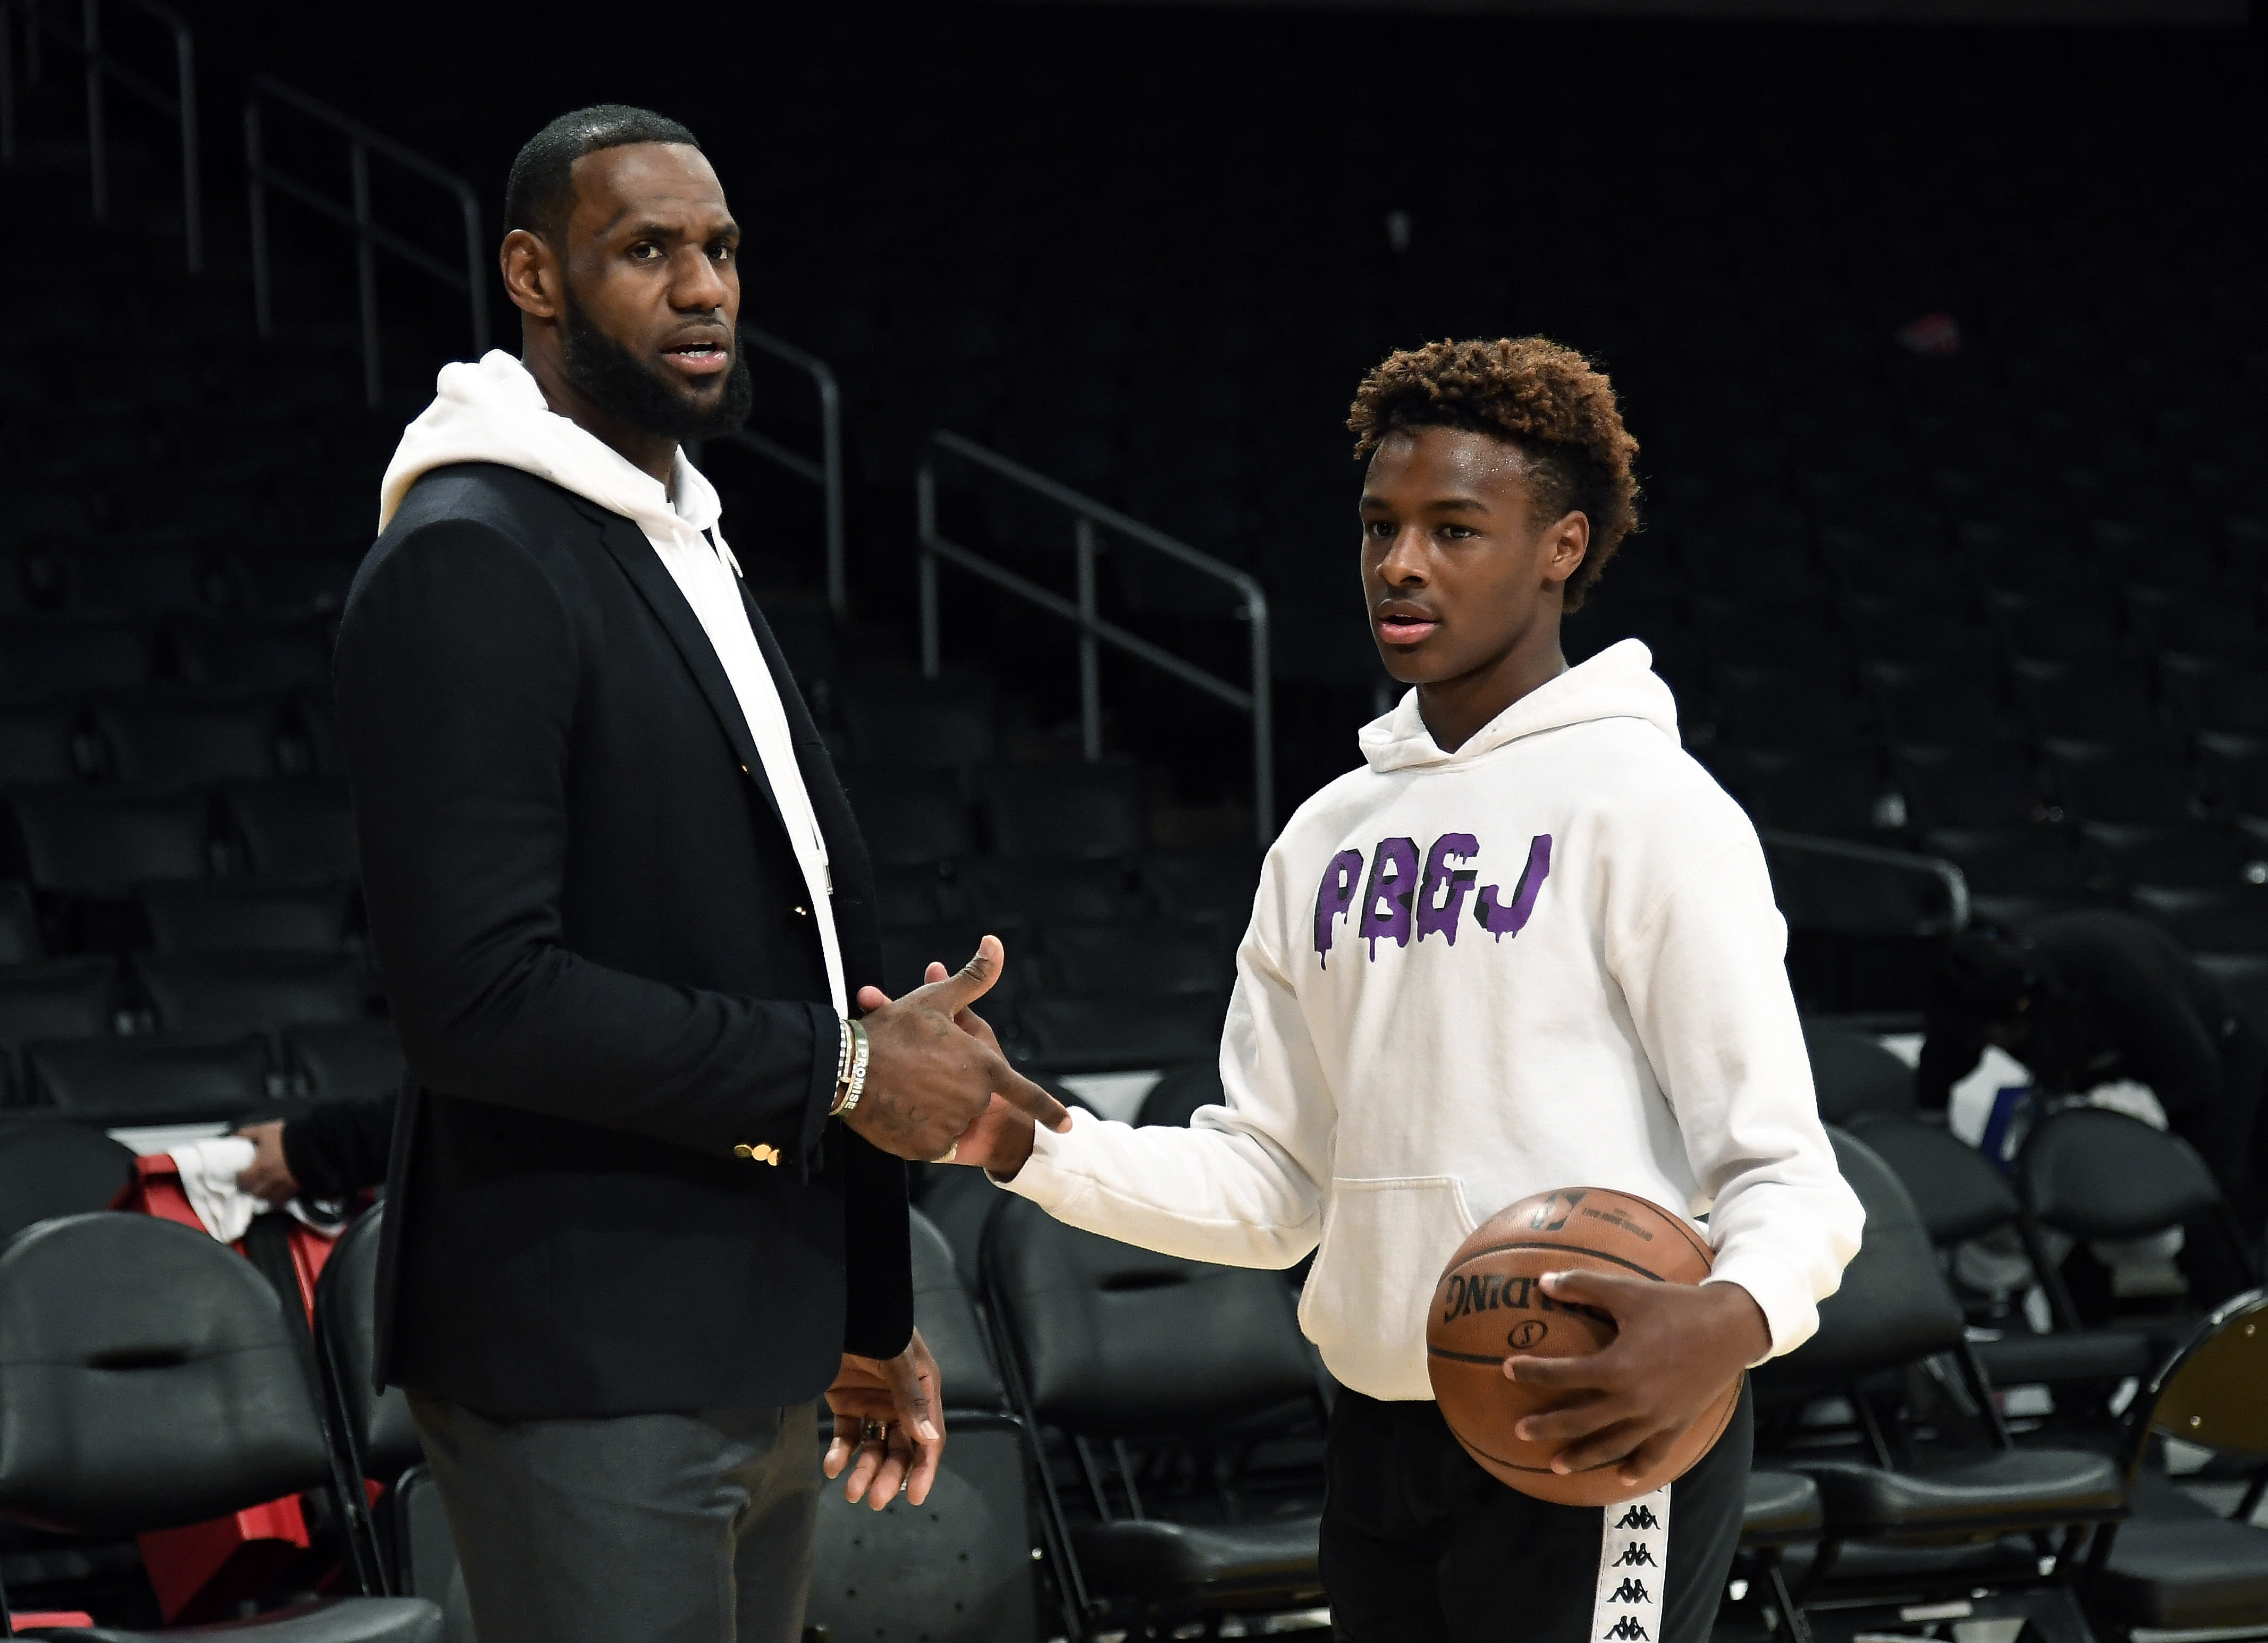 Bronny James Jr. will attend Sierra Canyon School this fall. (Photo by Kevork Djansezian/Getty Images)